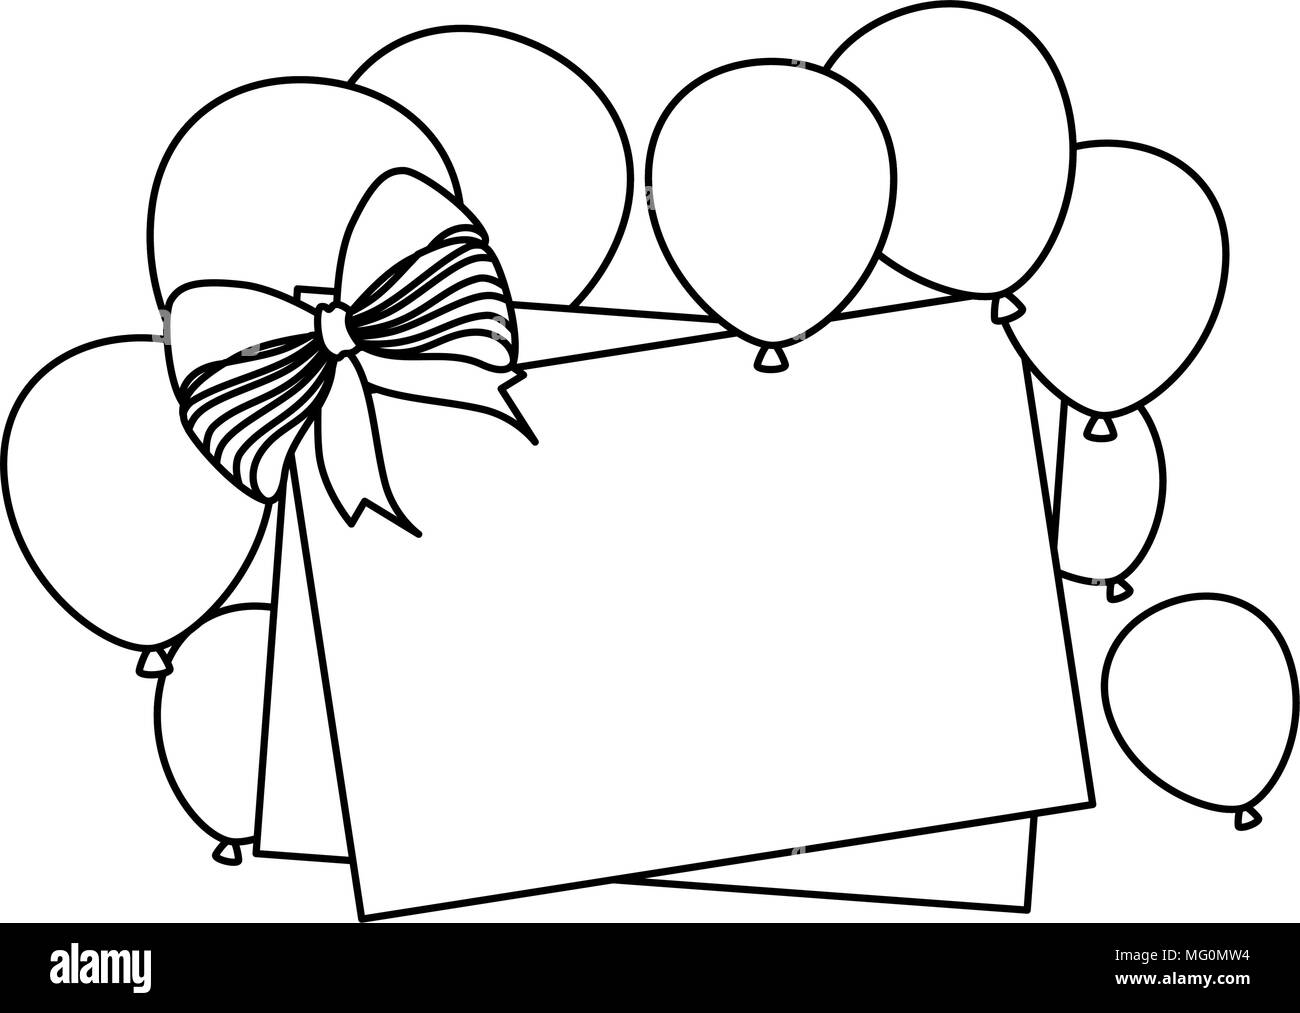 happy birthday card template balloons black and white stock photos